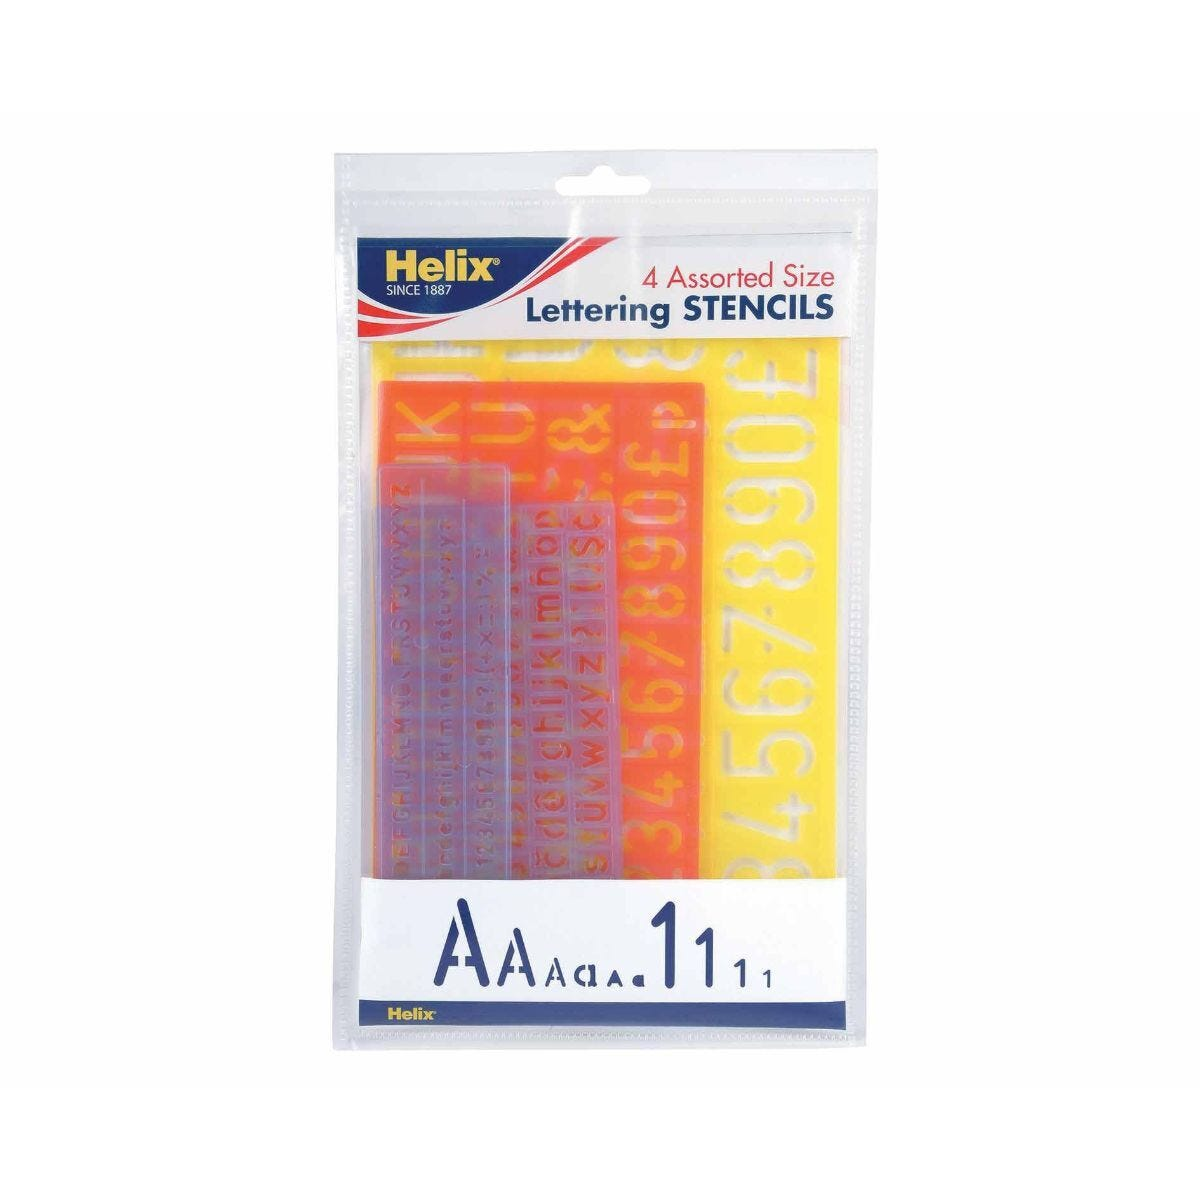 Helix Letter Stencil Multipack